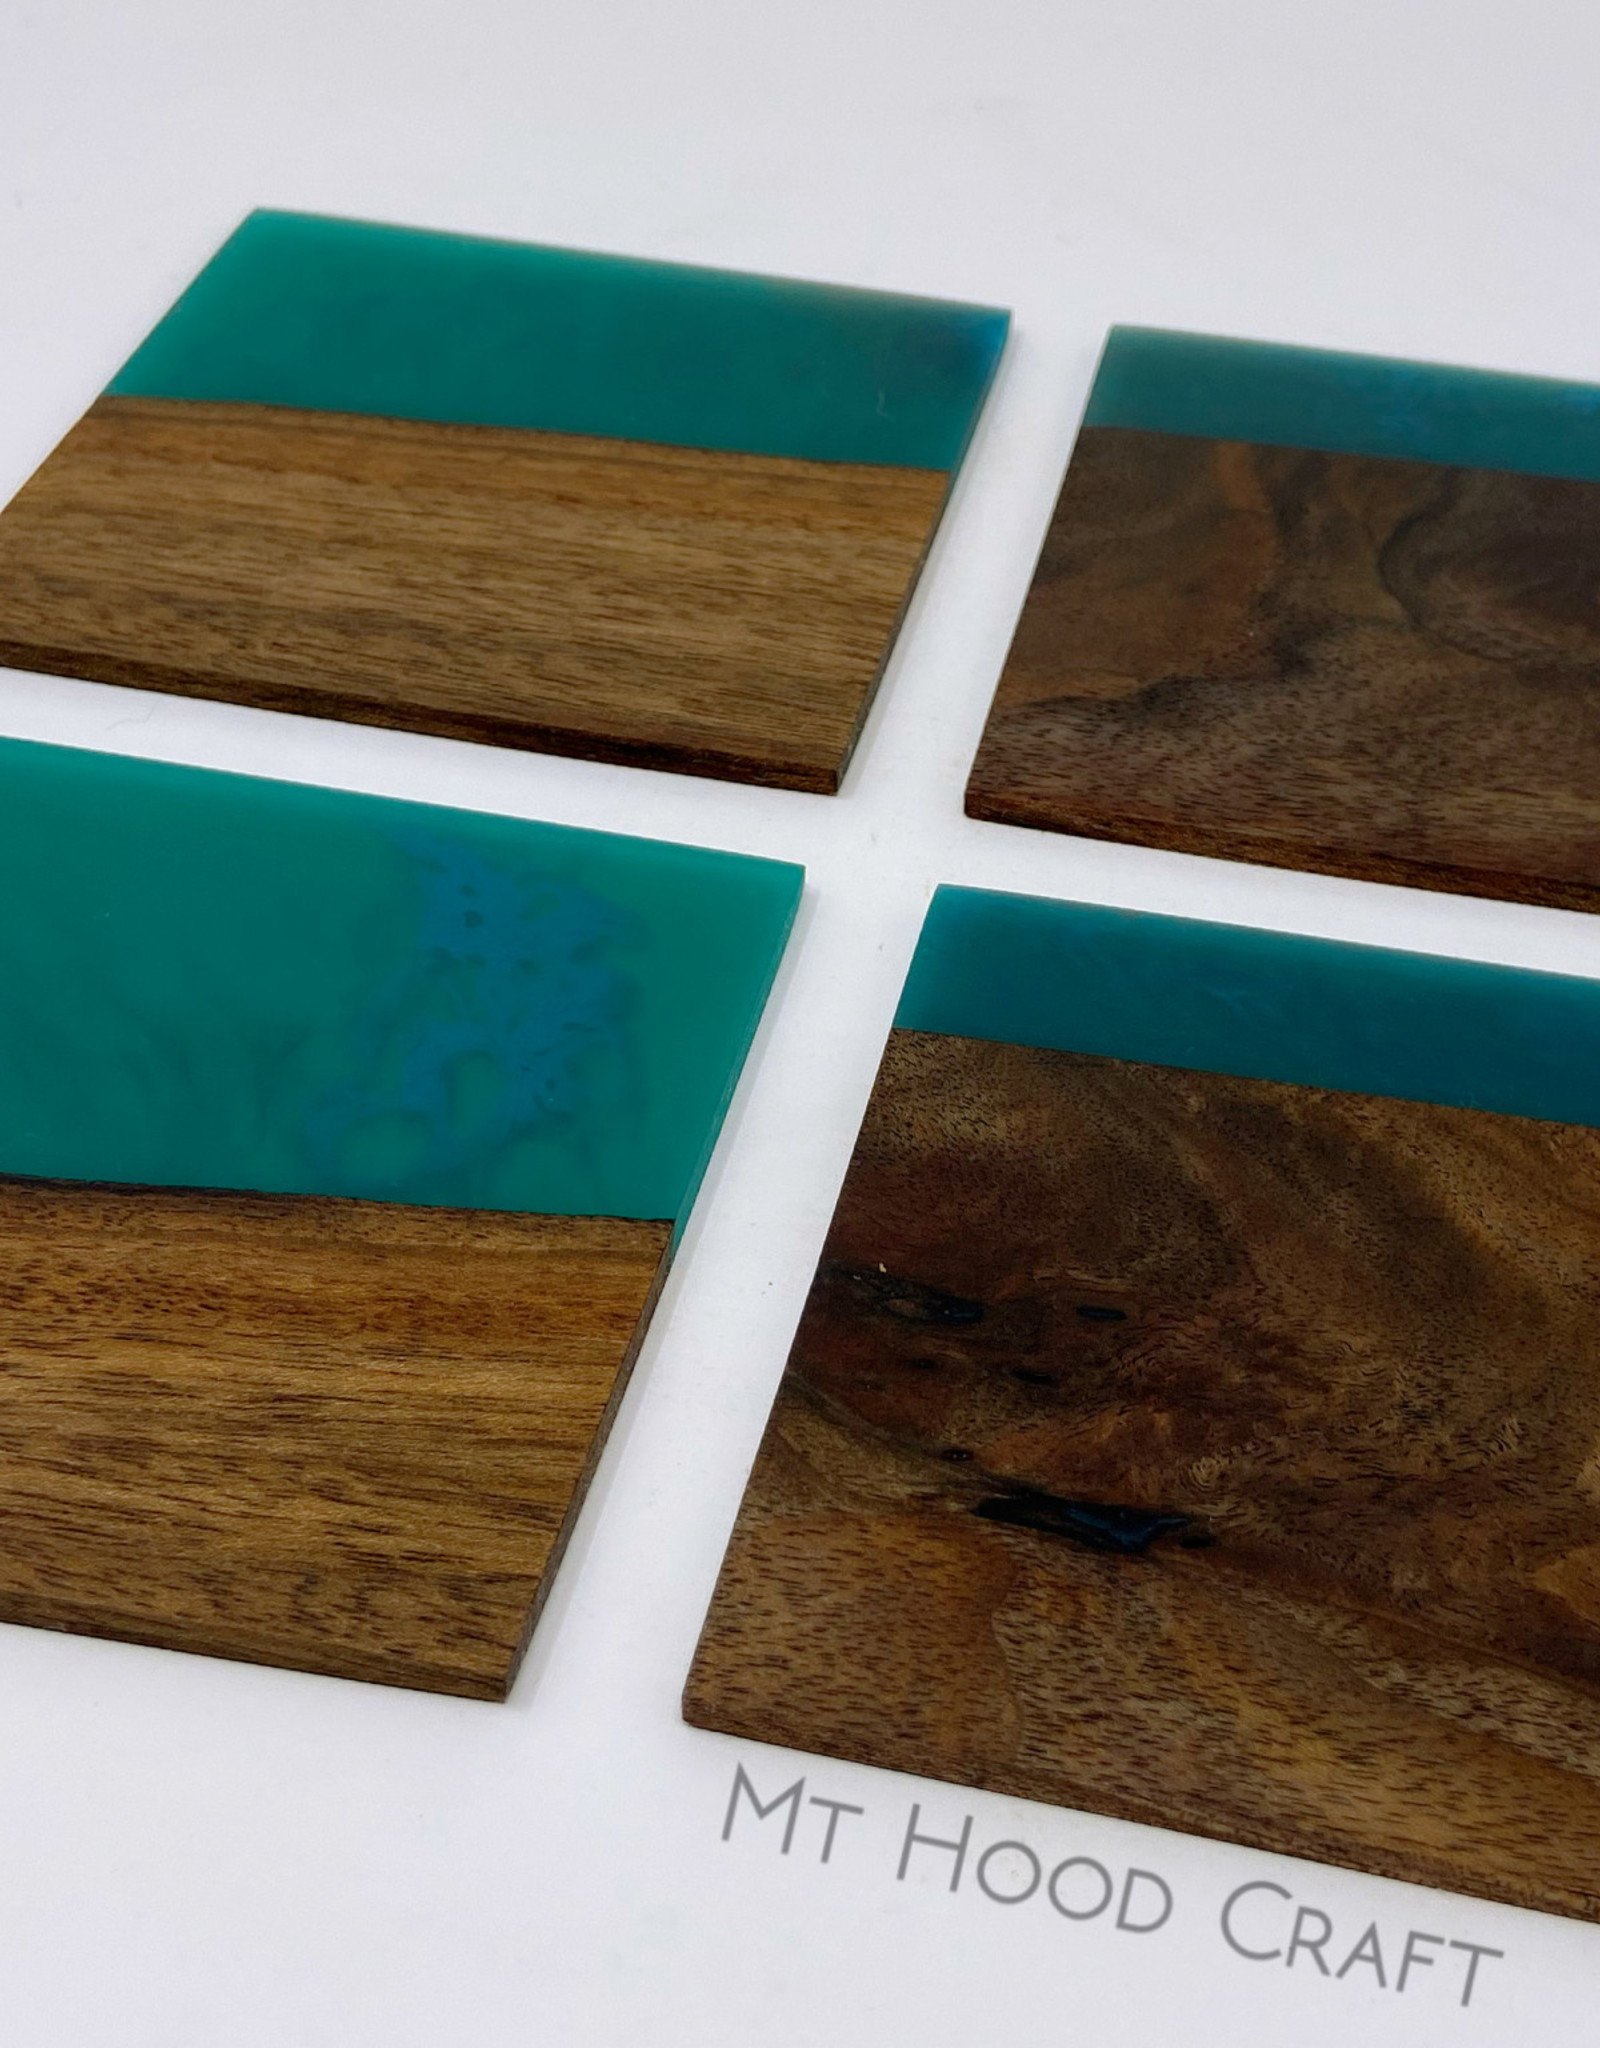 """Ron and Ellie Purvis Mt. Hood Craft - """"Lumiere""""- Wood and Resin Coasters (set of 4)"""